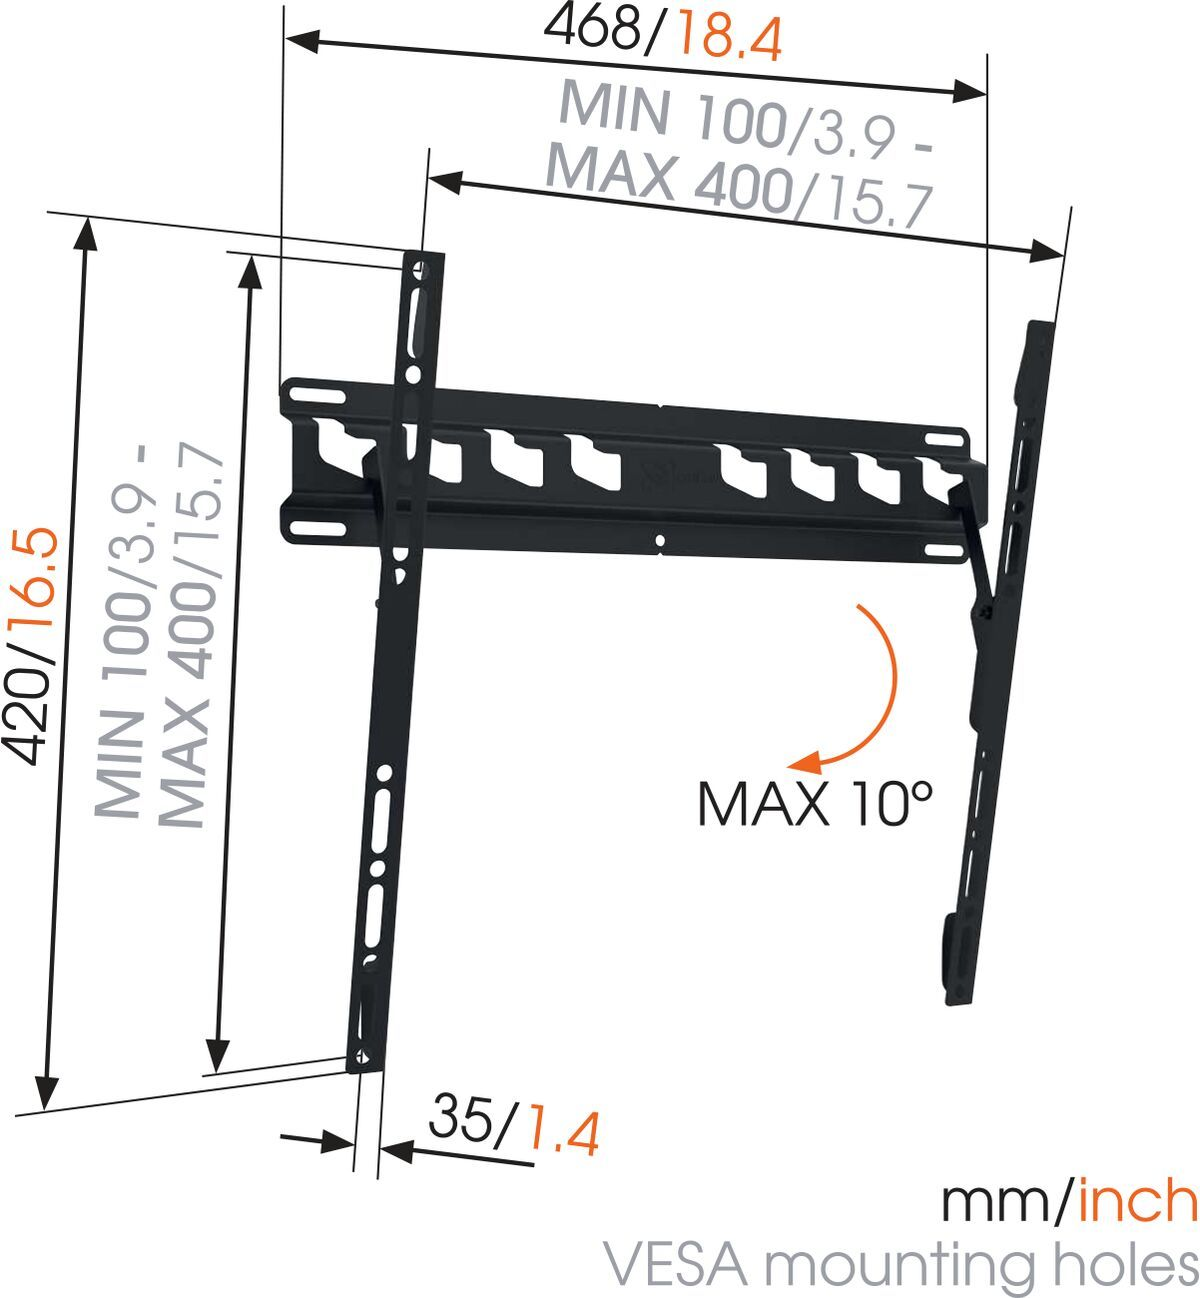 Vogel's MA 3010 (A1) Tilting TV Wall Mount - Suitable for 32 up to 55 inch TVs up to 40 kg - Tilt up to 10° - Dimensions